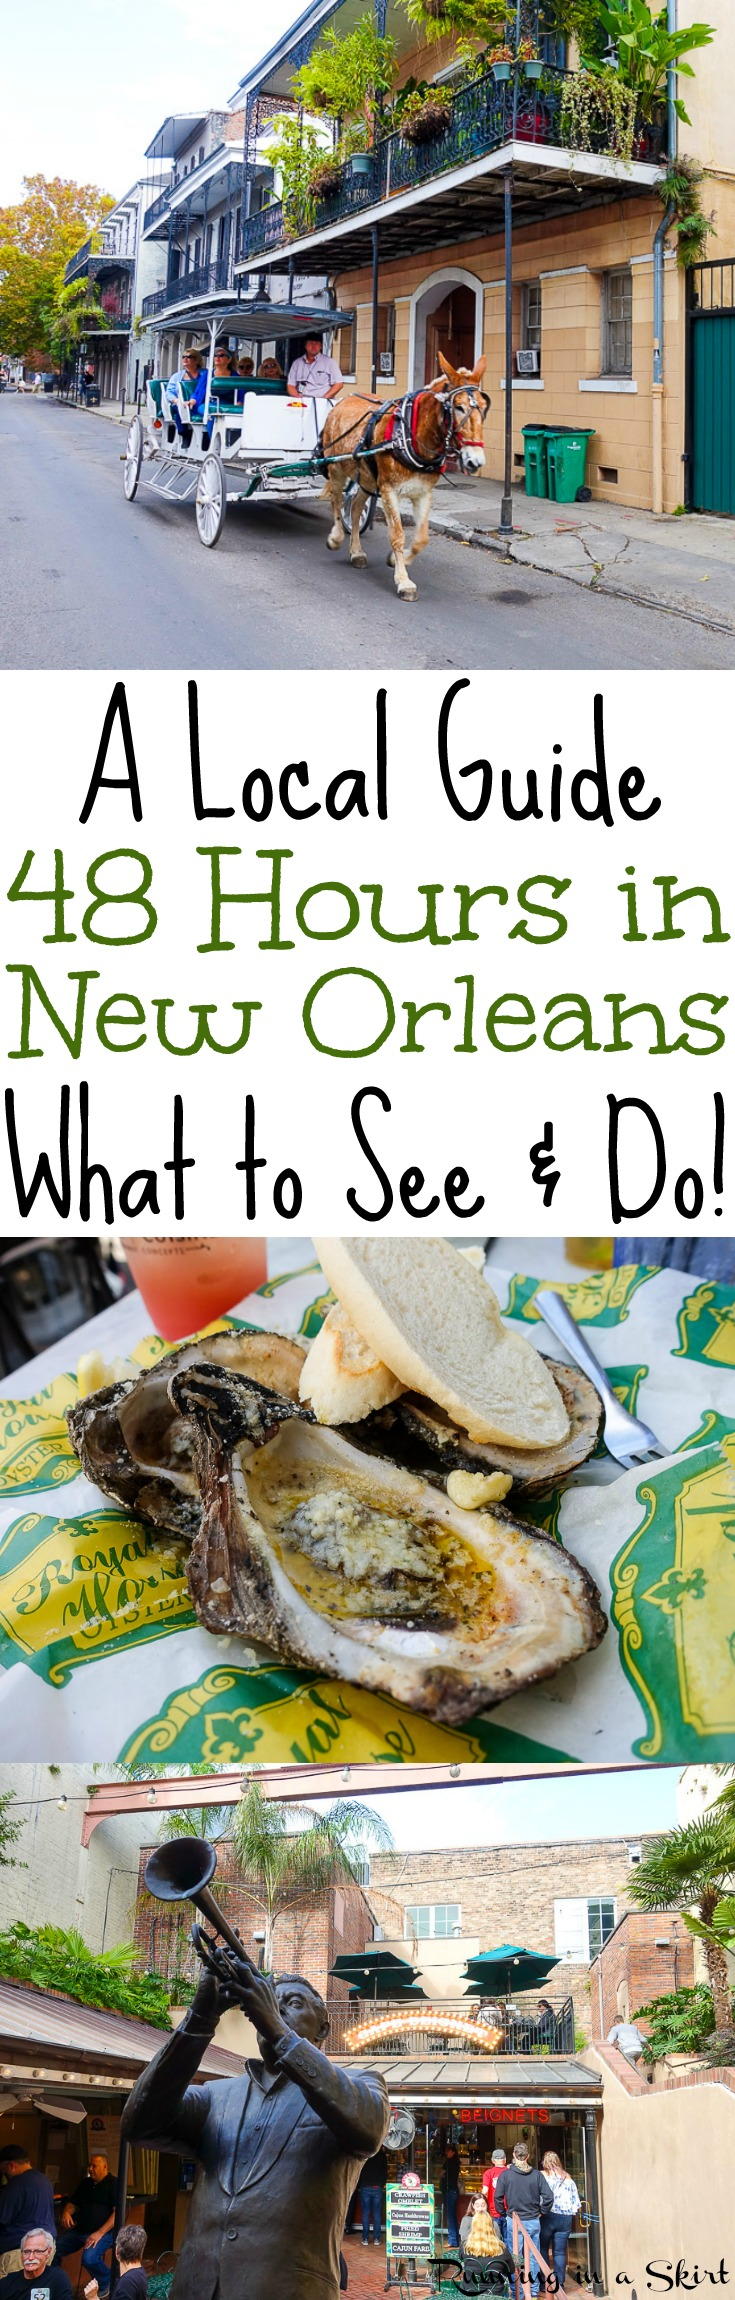 Things to Do in New Orleans - a 48 hour travel guide by locals!  What to do in the French Quarter, Bourbon Street, Garden District, restaurants, shopping... where to stay in and the best hotels!  Tips to plan your NOLA vacation. / Running in a Skirt via @juliewunder